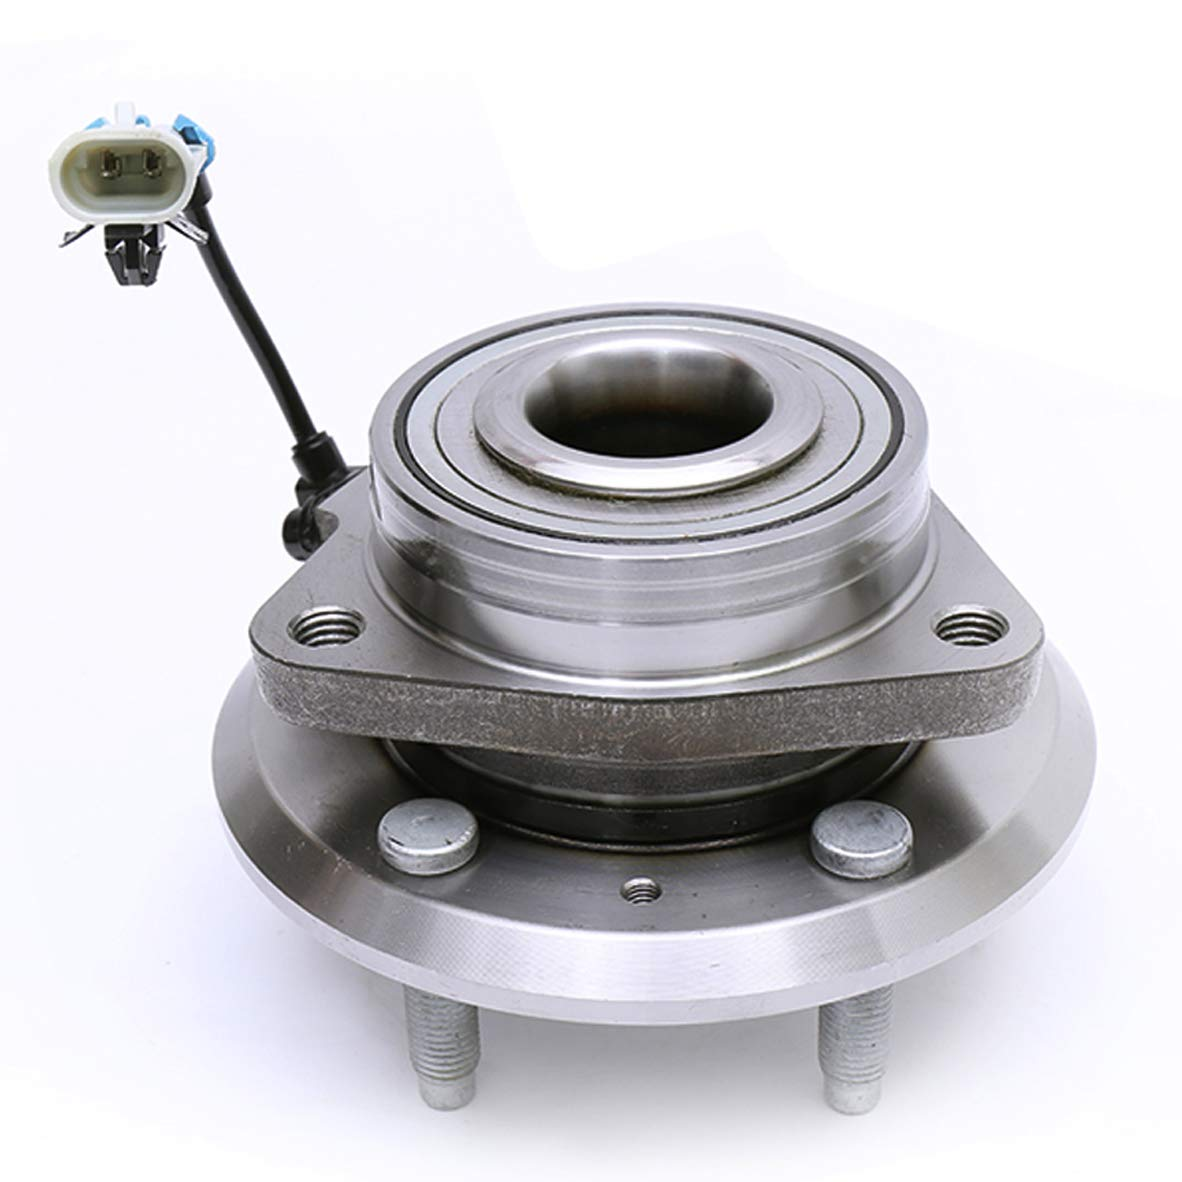 FKG 513276 Front Wheel Bearing Hub Assembly fit for 2007-2009 Chevy Equinox Pontiac Torrent Suzuki XL-7, 2008-2010 Saturn Vue, 2012-2015 Chevy Captiva Sport, 5 Lugs W/ABS by FKG